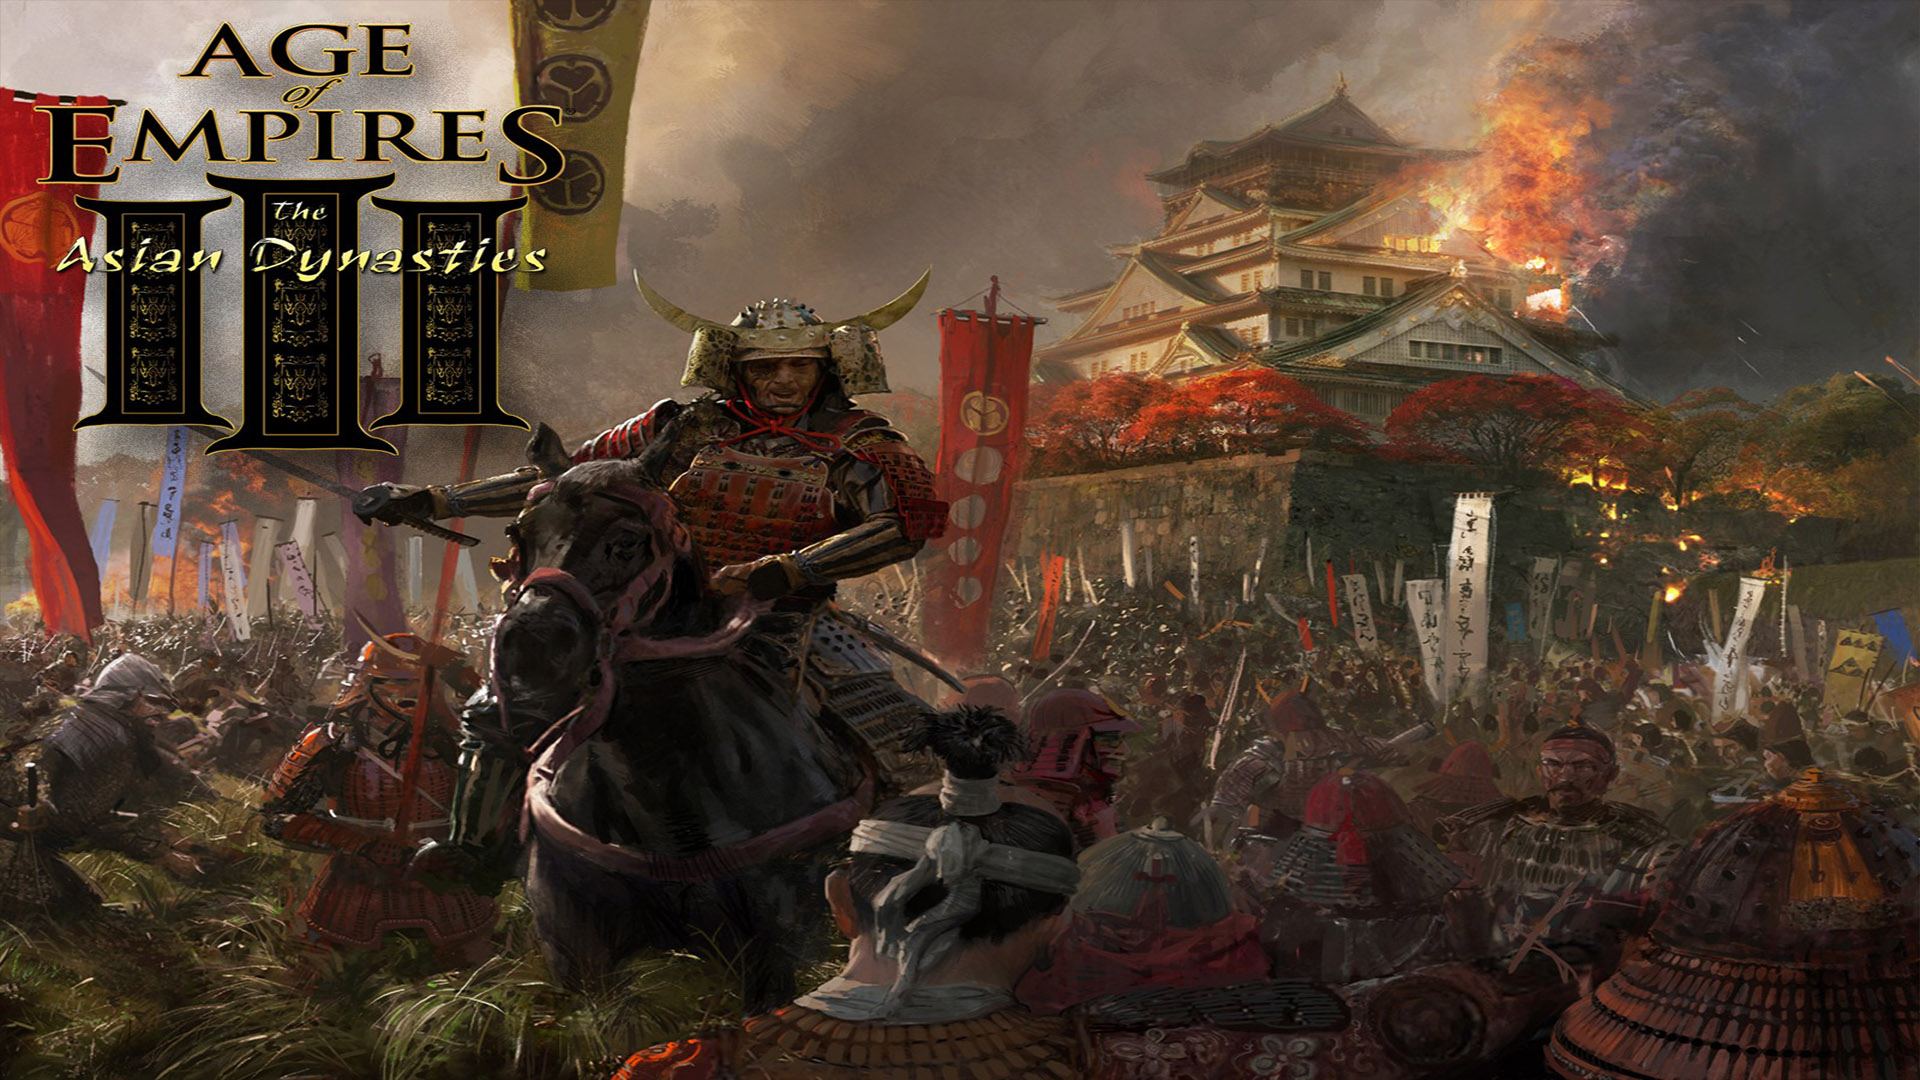 Age Of Empires Wallpaper: Age Of Empires III: The Asian Dynasties Details